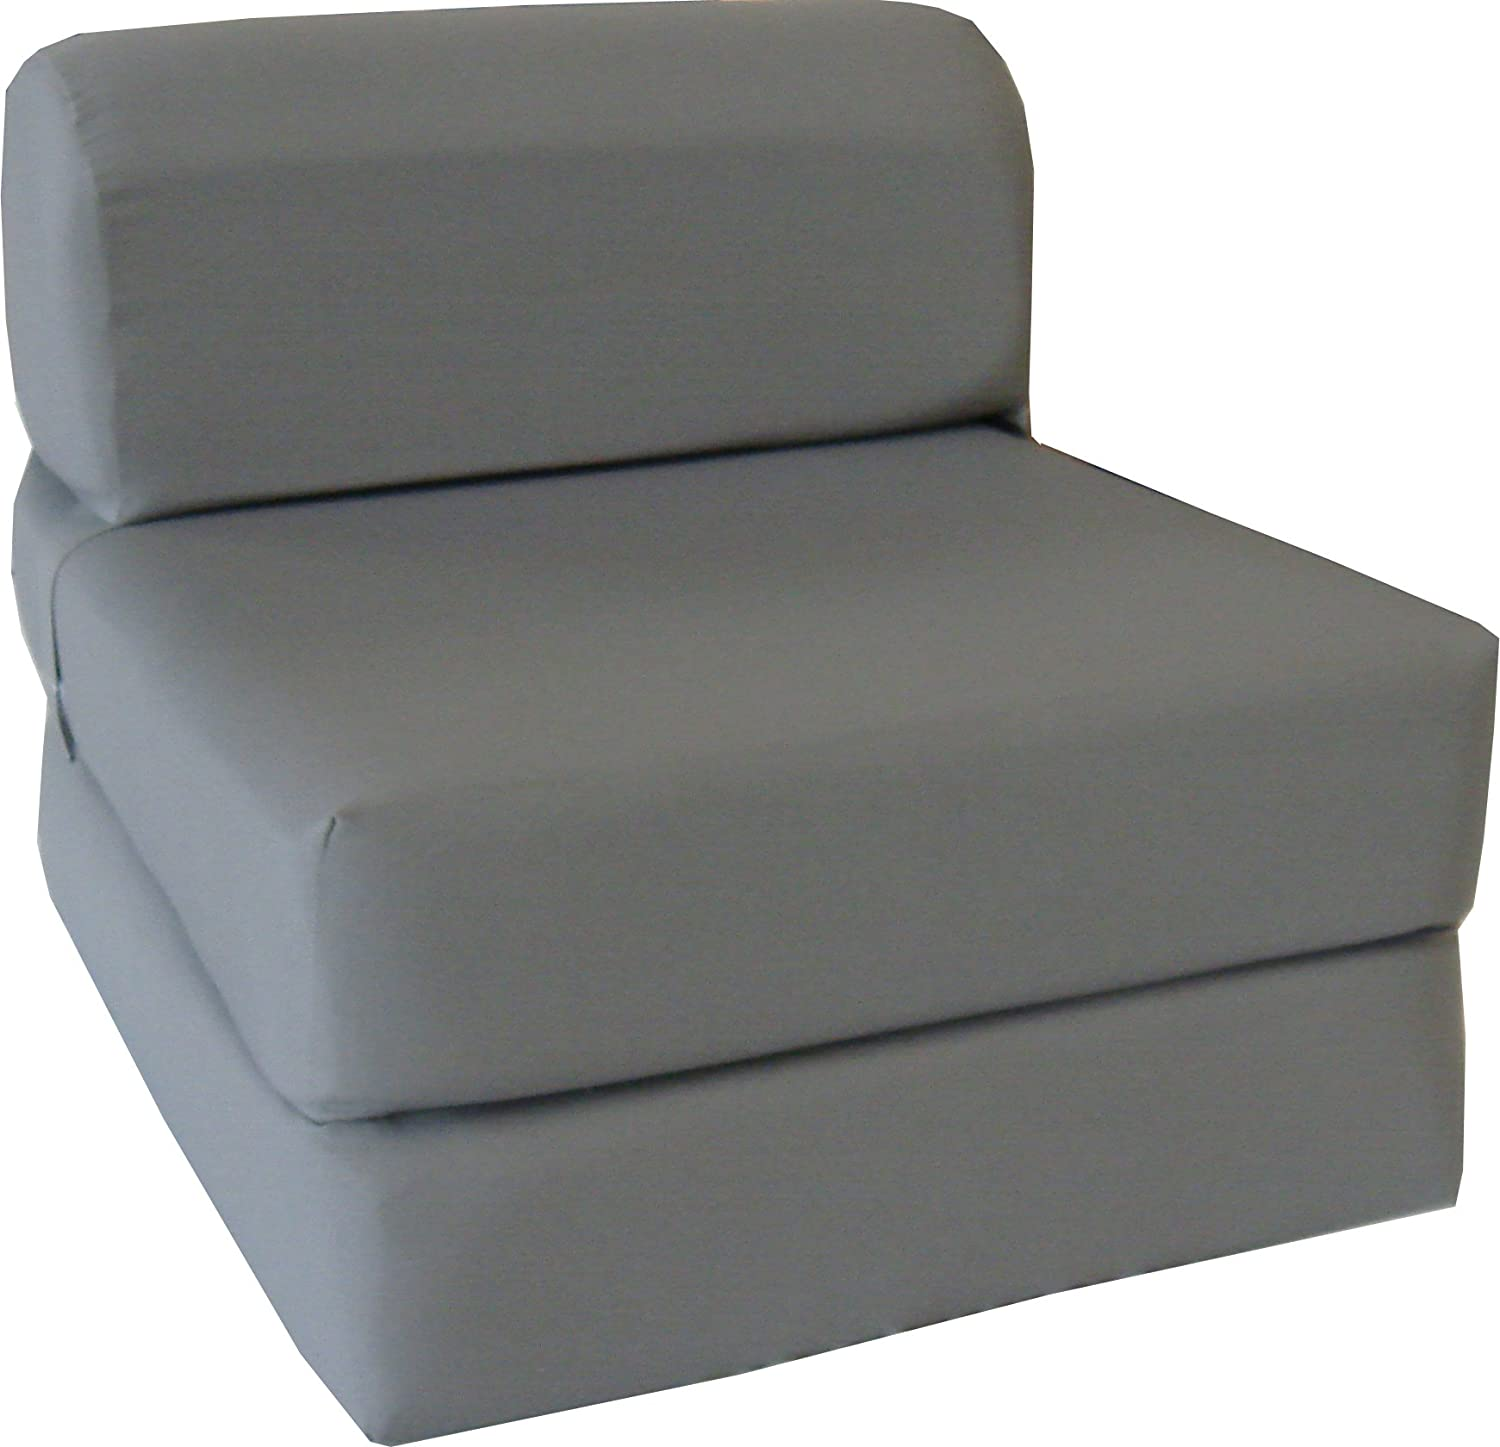 Amazon.com: Gray Sleeper Chair Folding Foam Bed Sized 6